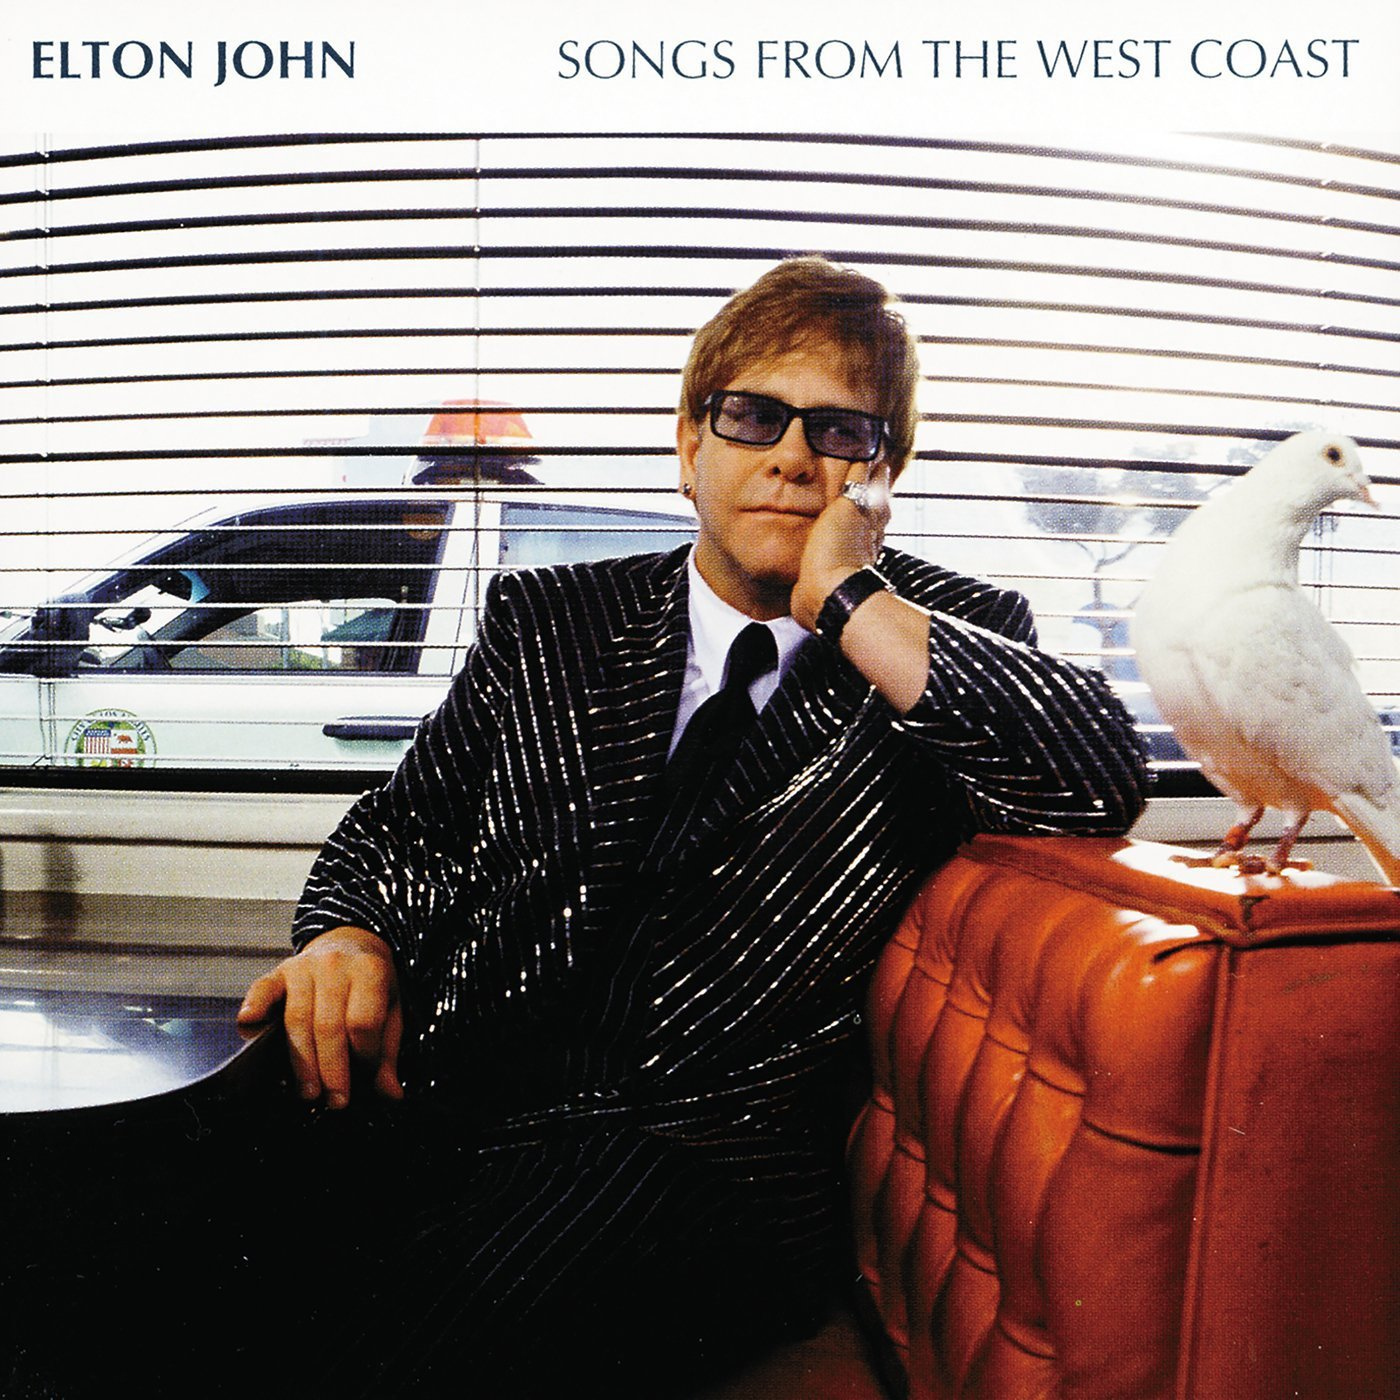 Vinilo : Elton John - Songs From The West Coast (180 Gram Vinyl, 2 Disc)